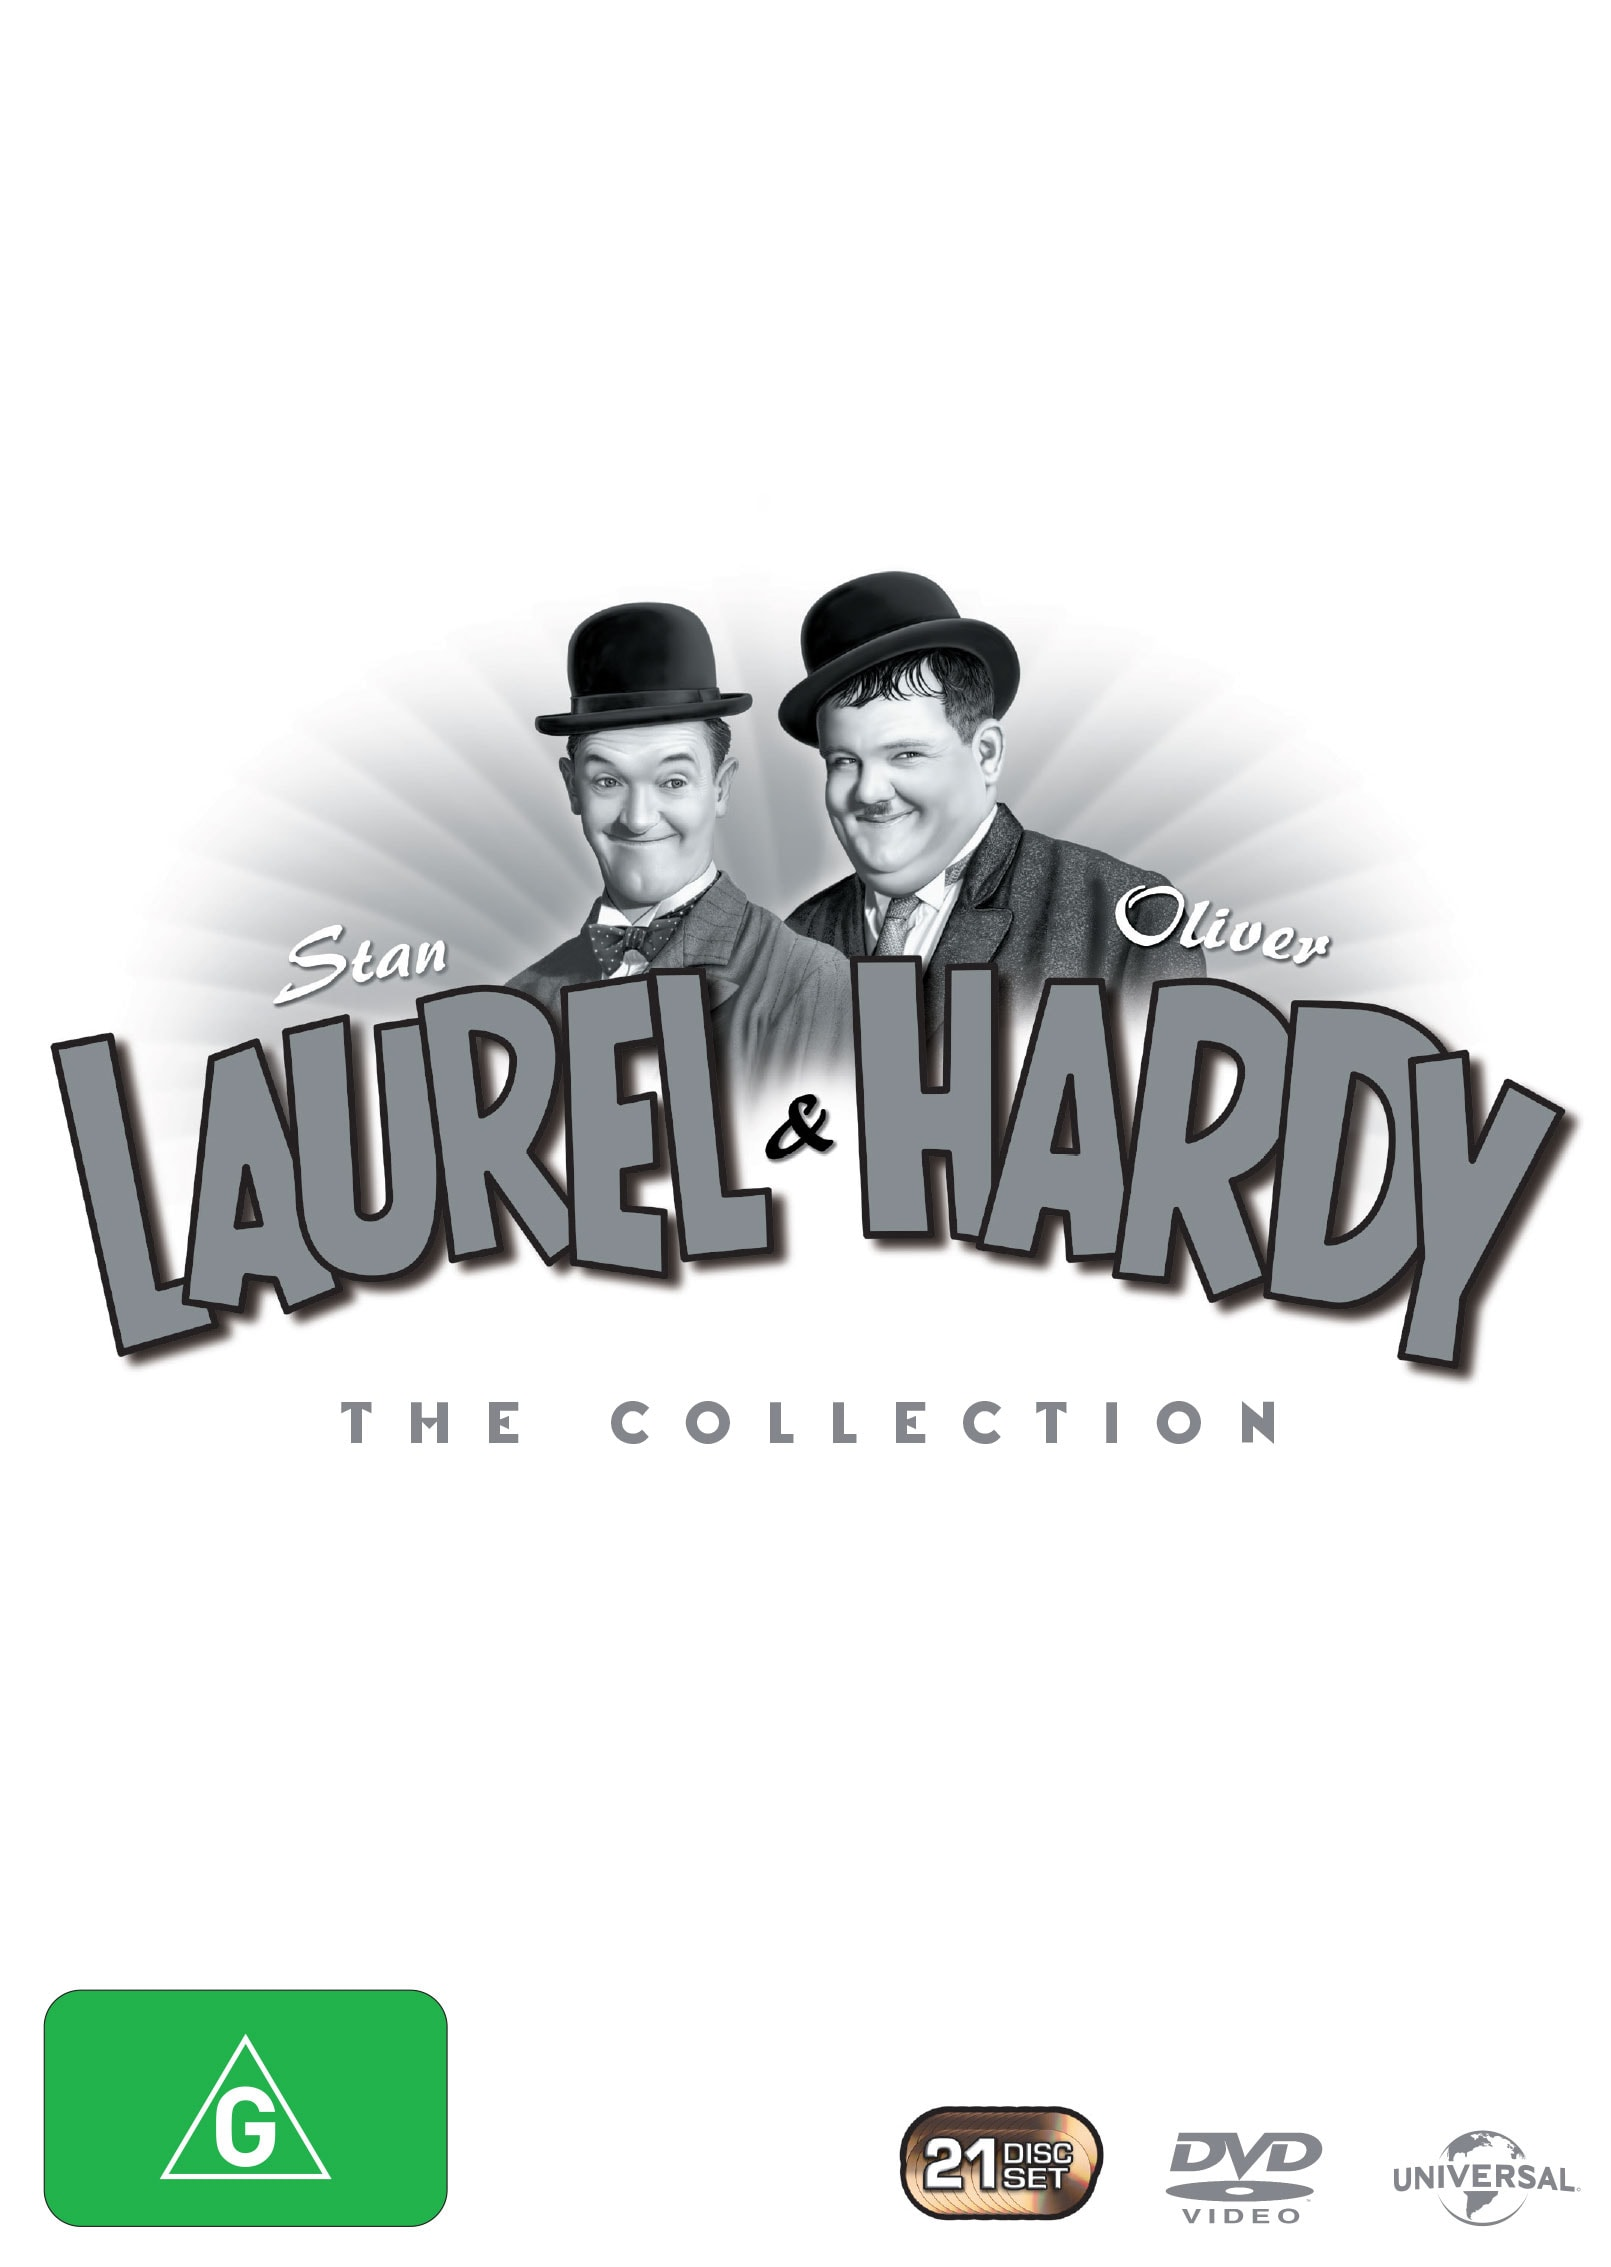 Laurel and Hardy: The Collection (Box Set) [DVD]